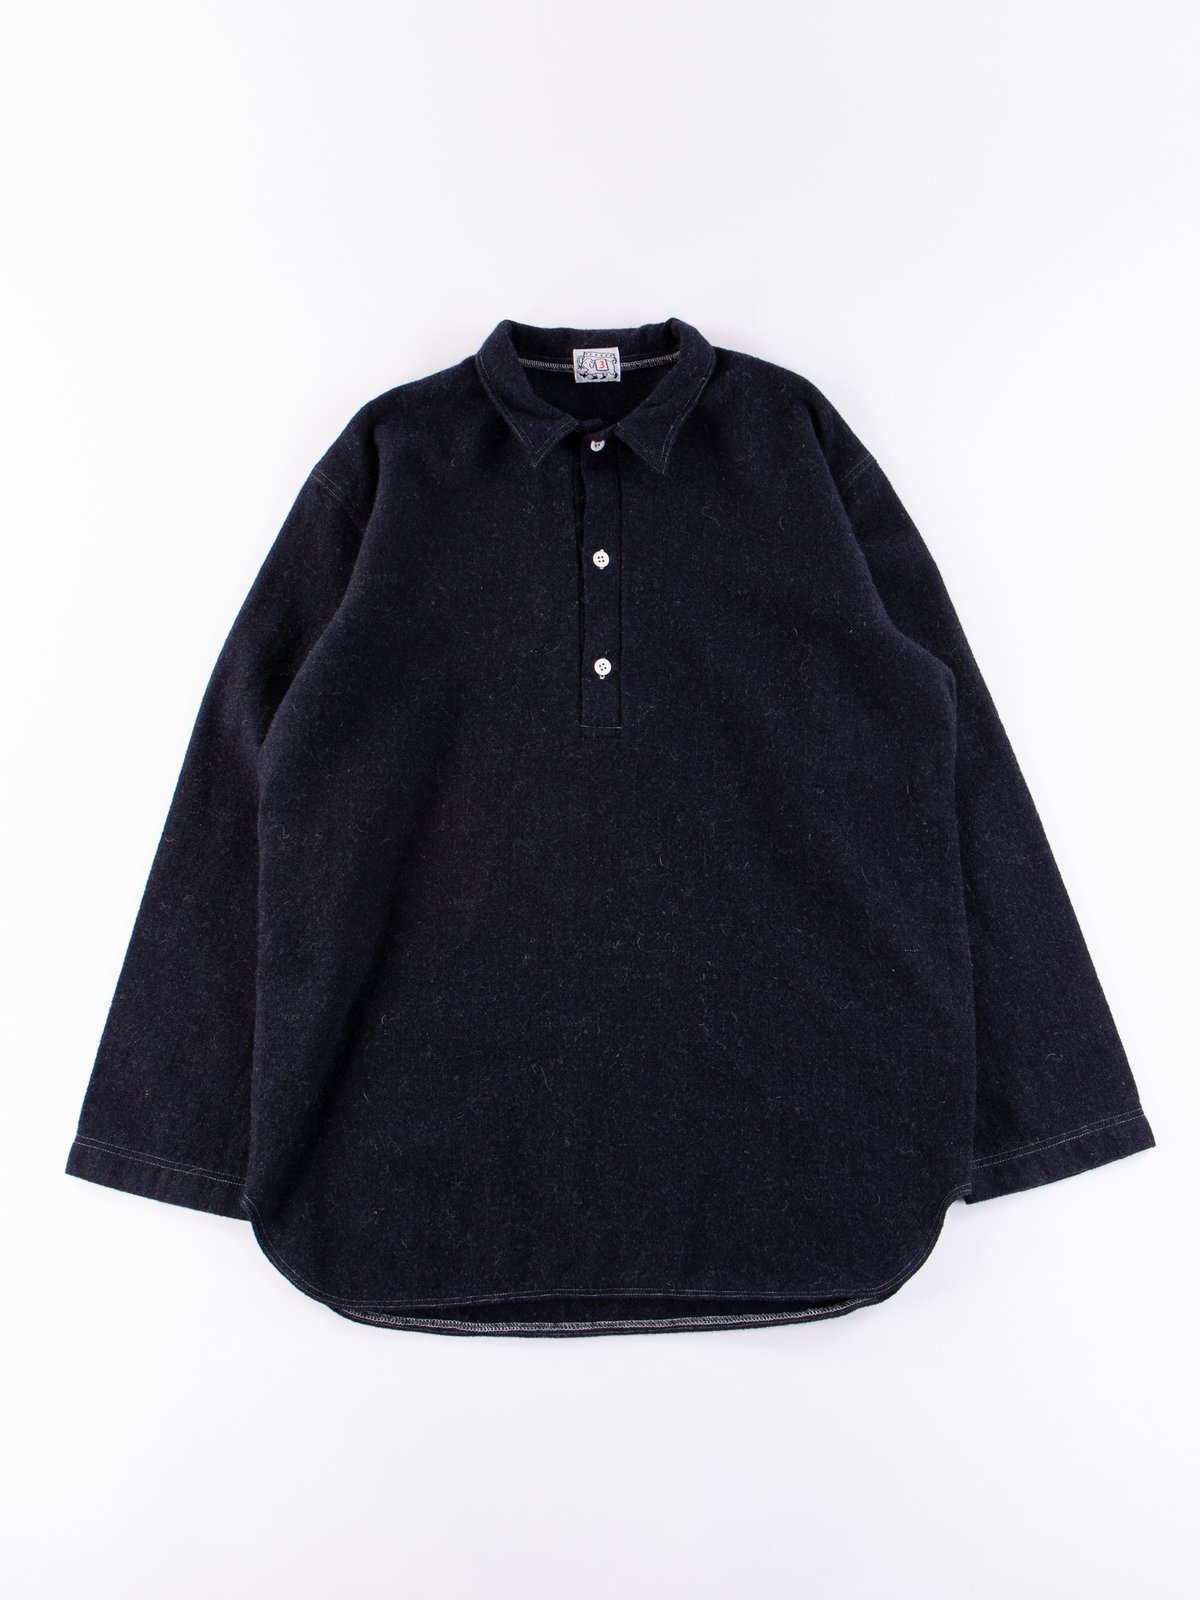 Navy Weavers Stock Pullover Tail Shirt - Image 1